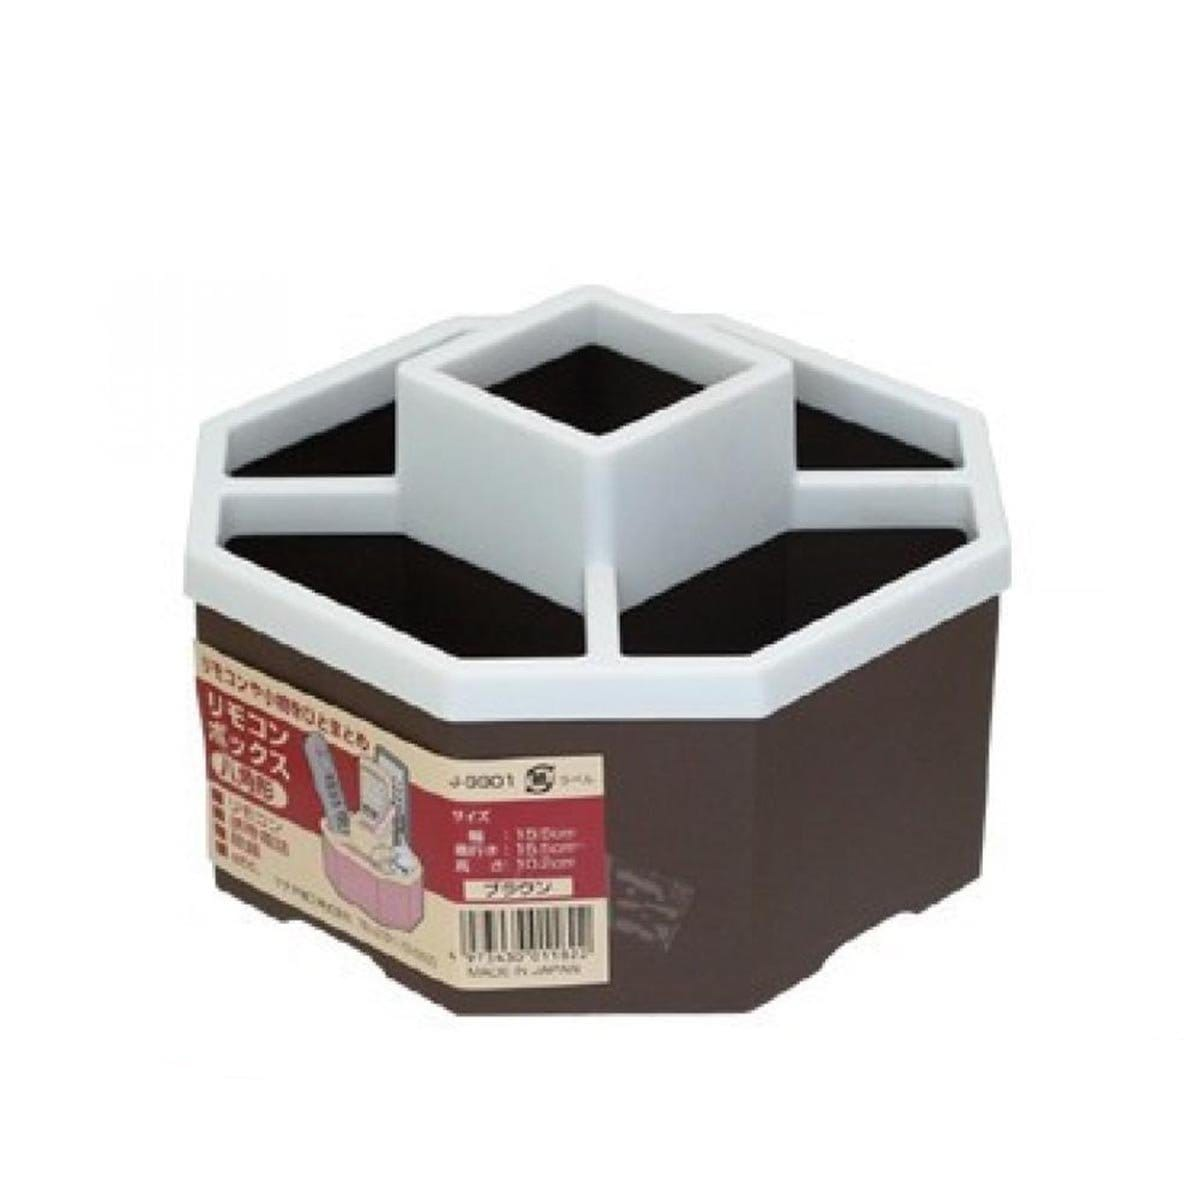 Japanese Plastic Remote Control Octagon Storage Box Brown